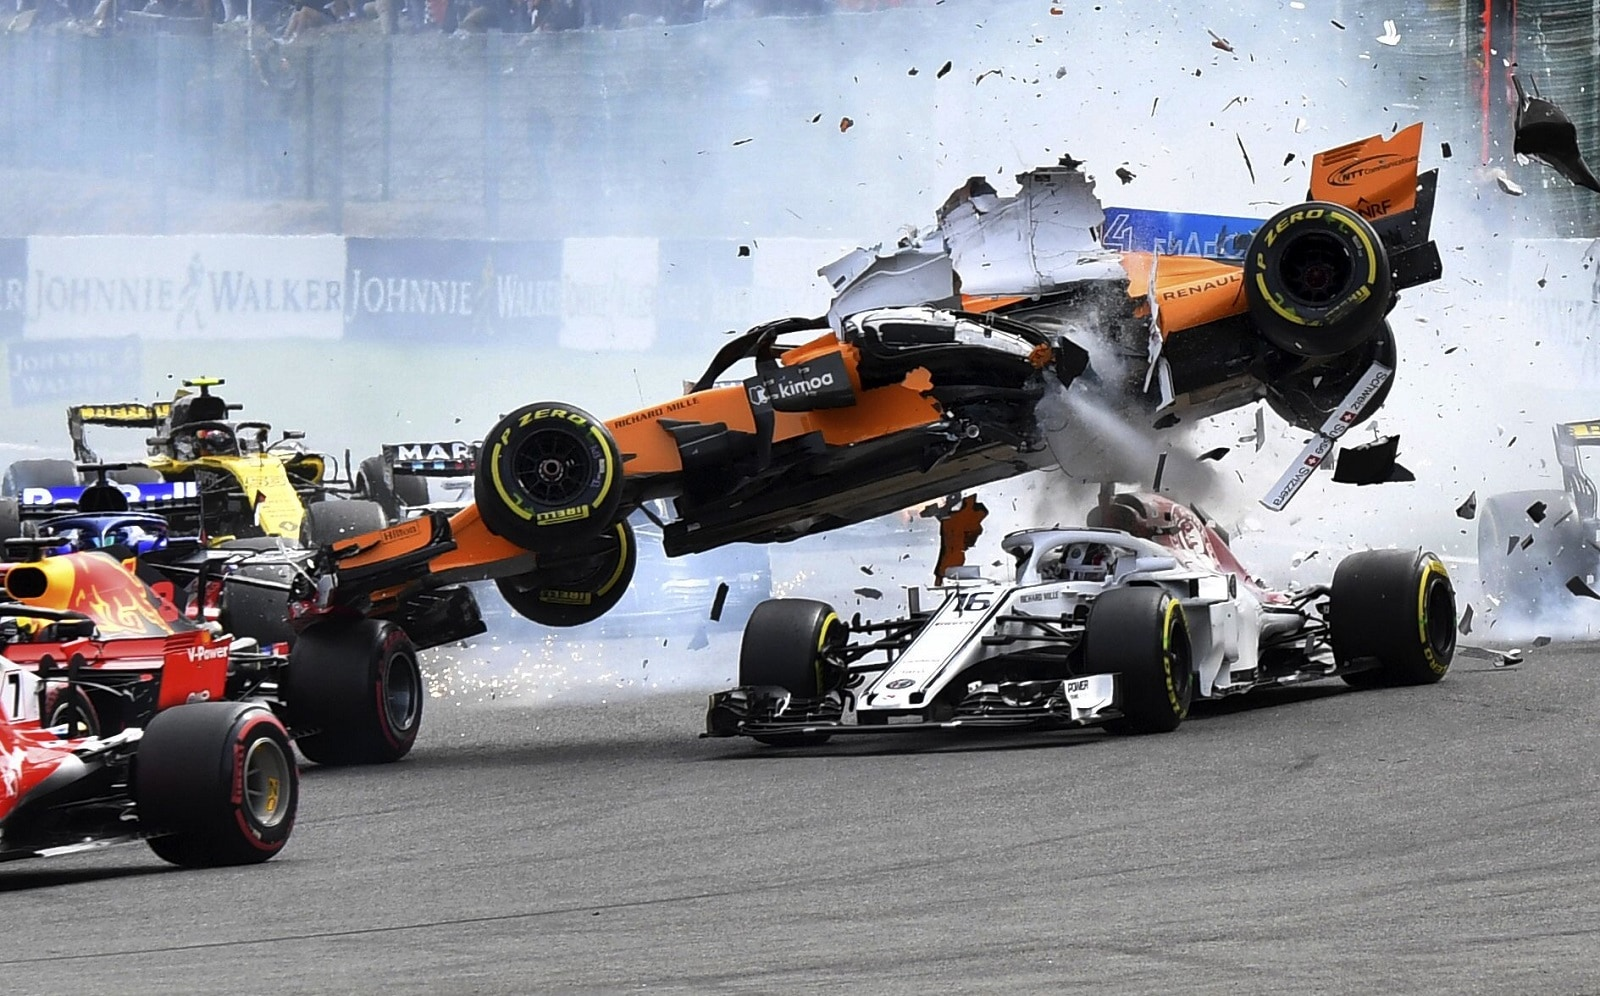 Mclaren driver Fernando Alonso of Spain goes over the top of Sauber driver Charles Leclerc of Monaco at the start of the Belgian Formula One Grand Prix in Spa-Francorchamps, Belgium, on August 26, 2018. (AP Photo/Geert Vanden Wijngaert)